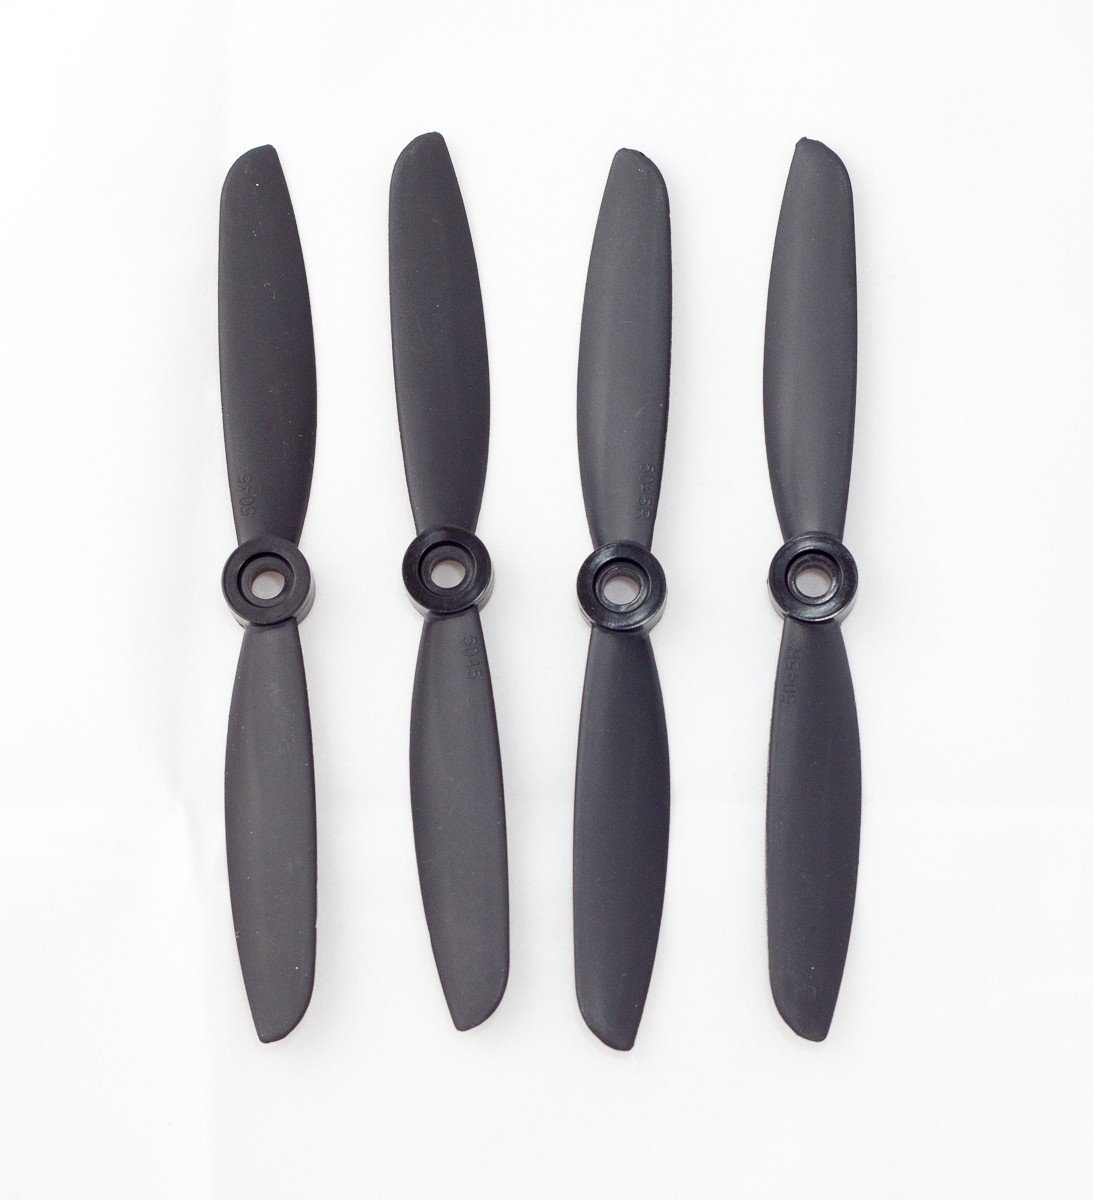 4x Gemfan 5045 Carbon+Nylon Black